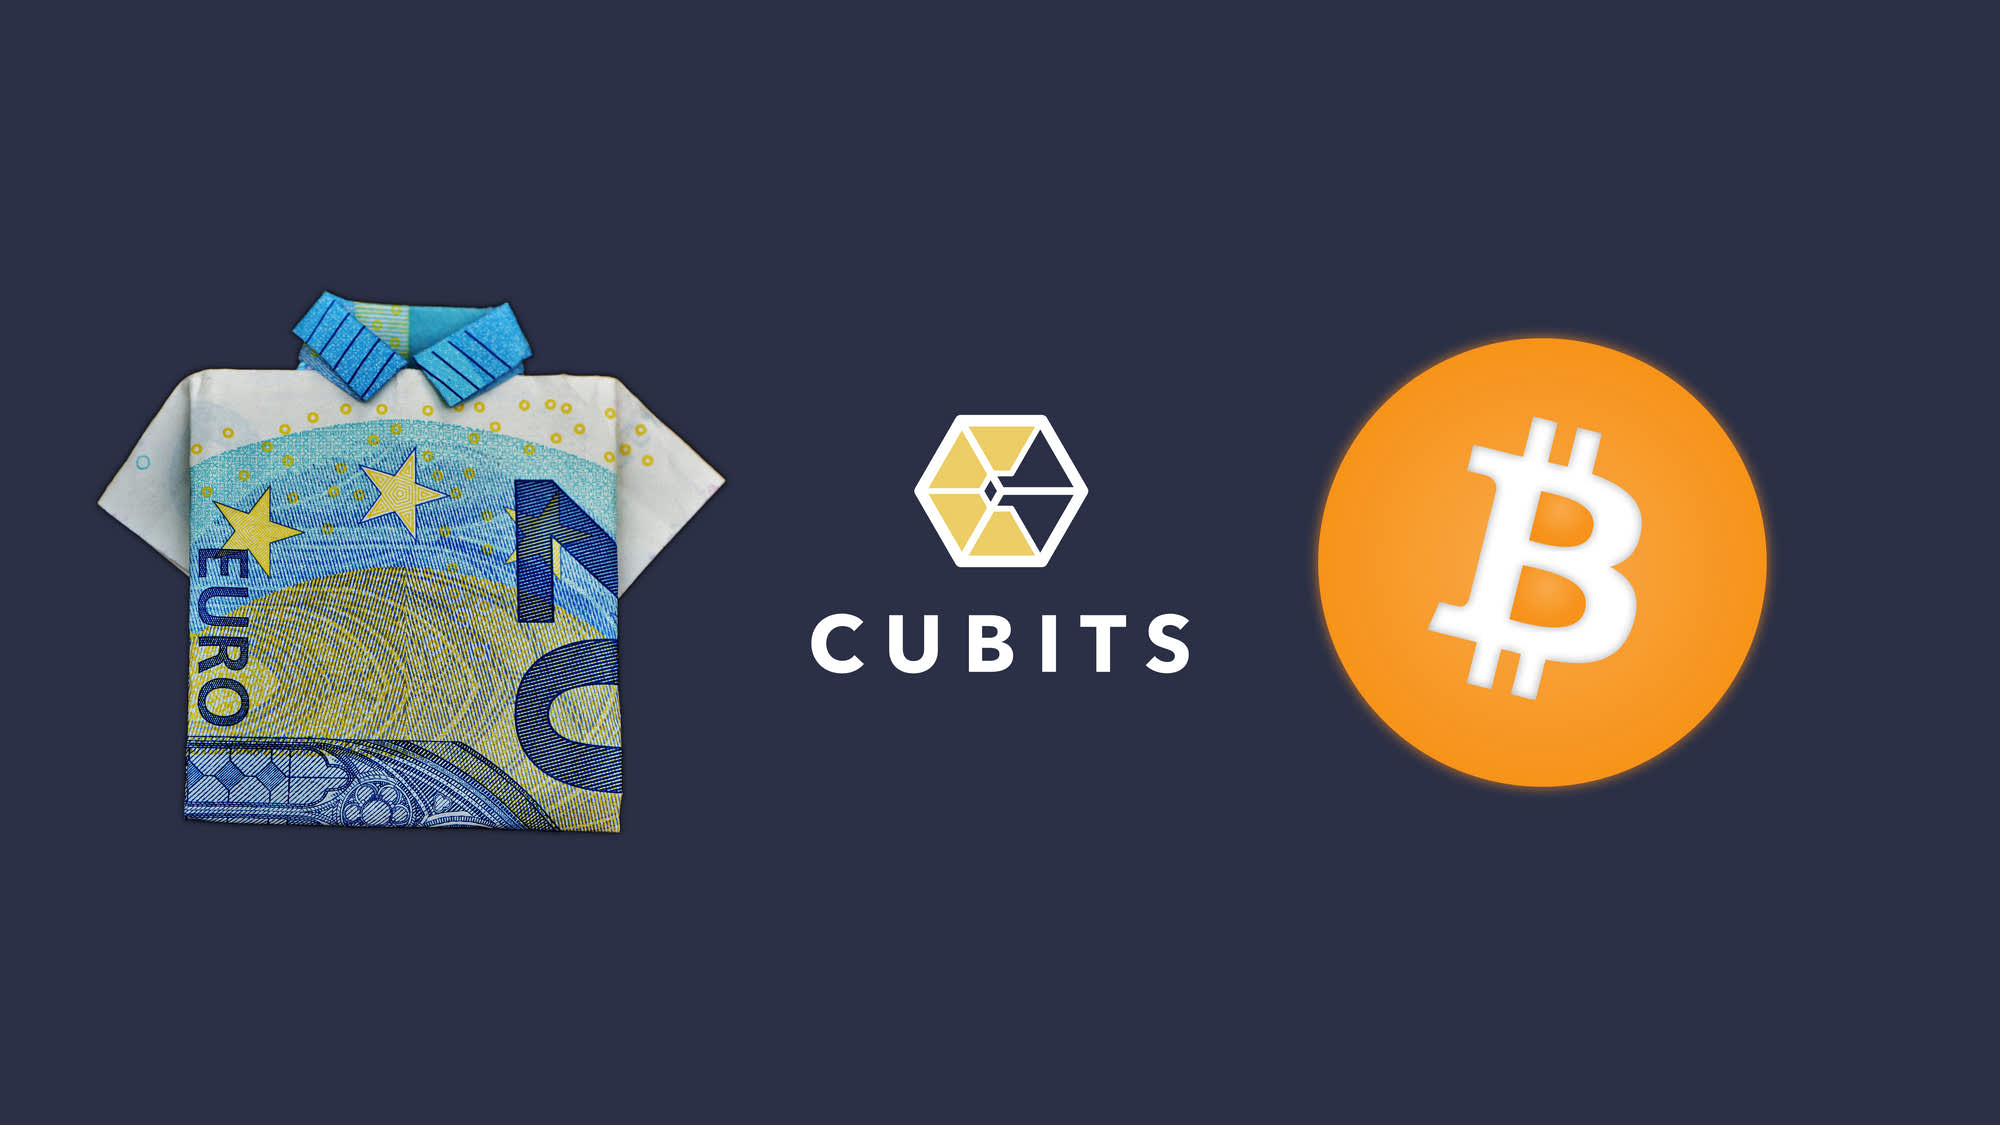 Euroshirt, Cubits, and Bitcoin